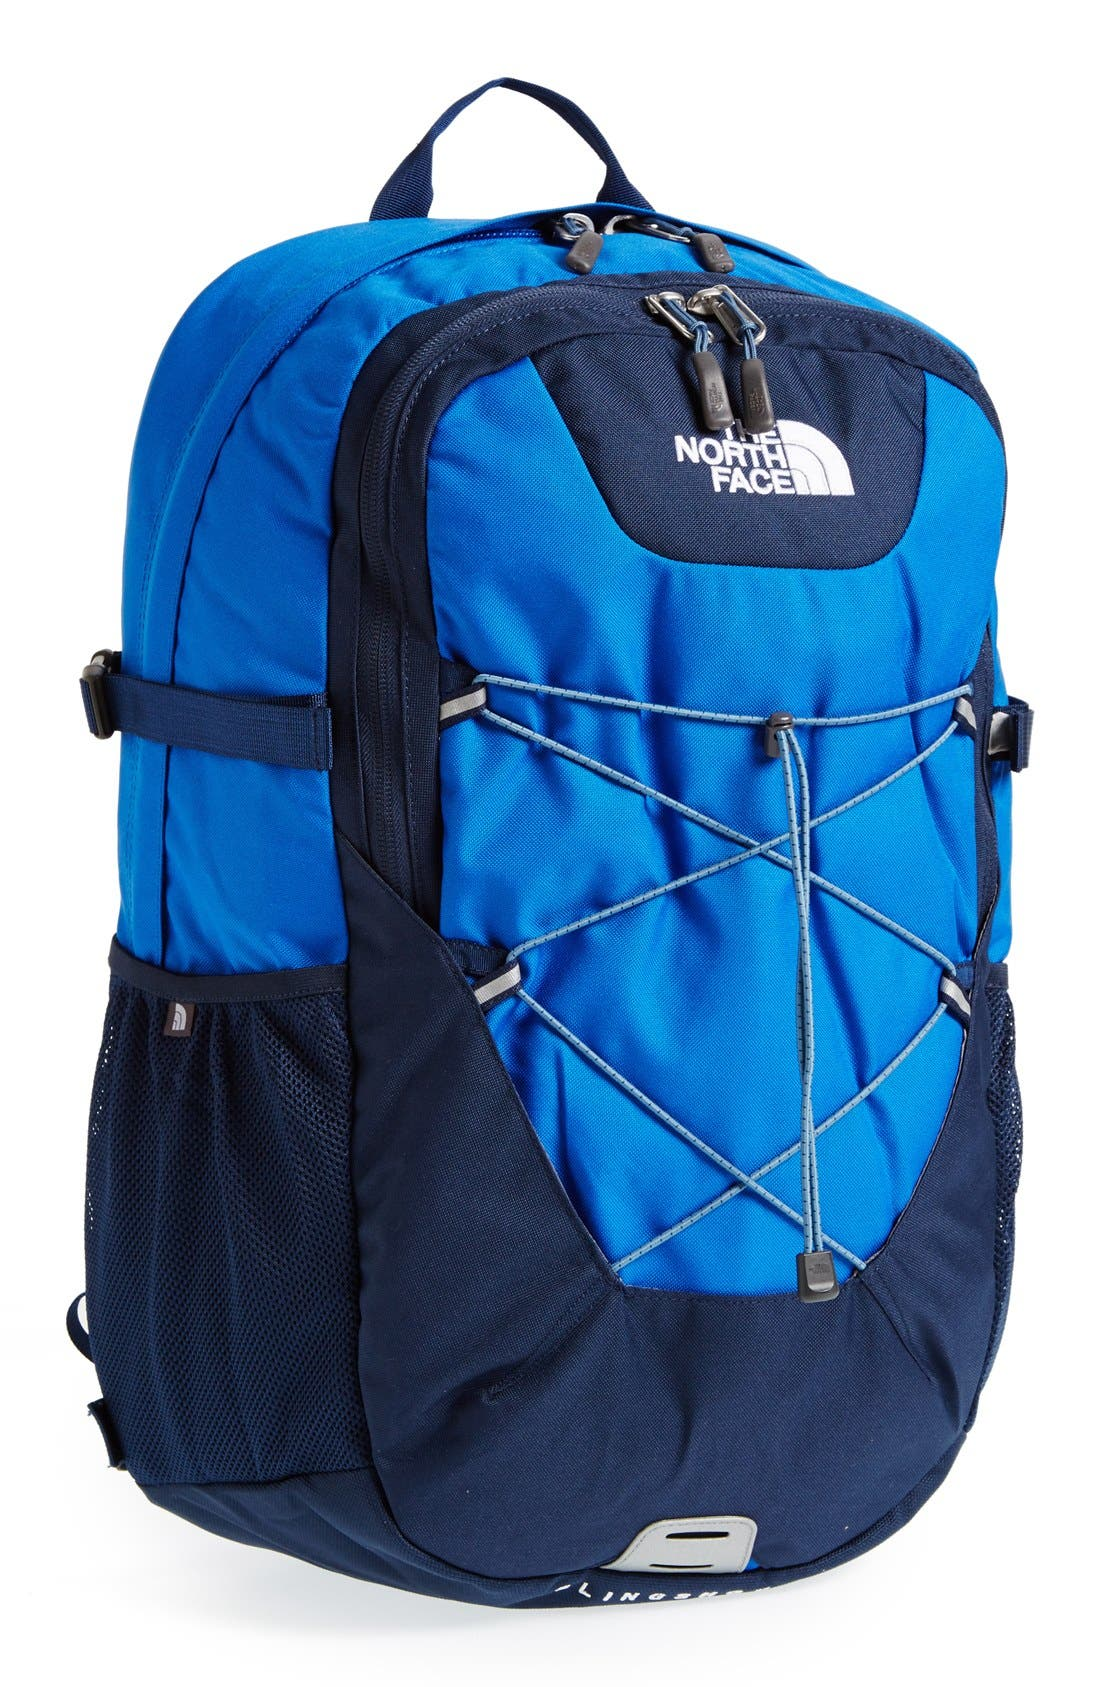 Main Image - The North Face 'Slingshot' Backpack